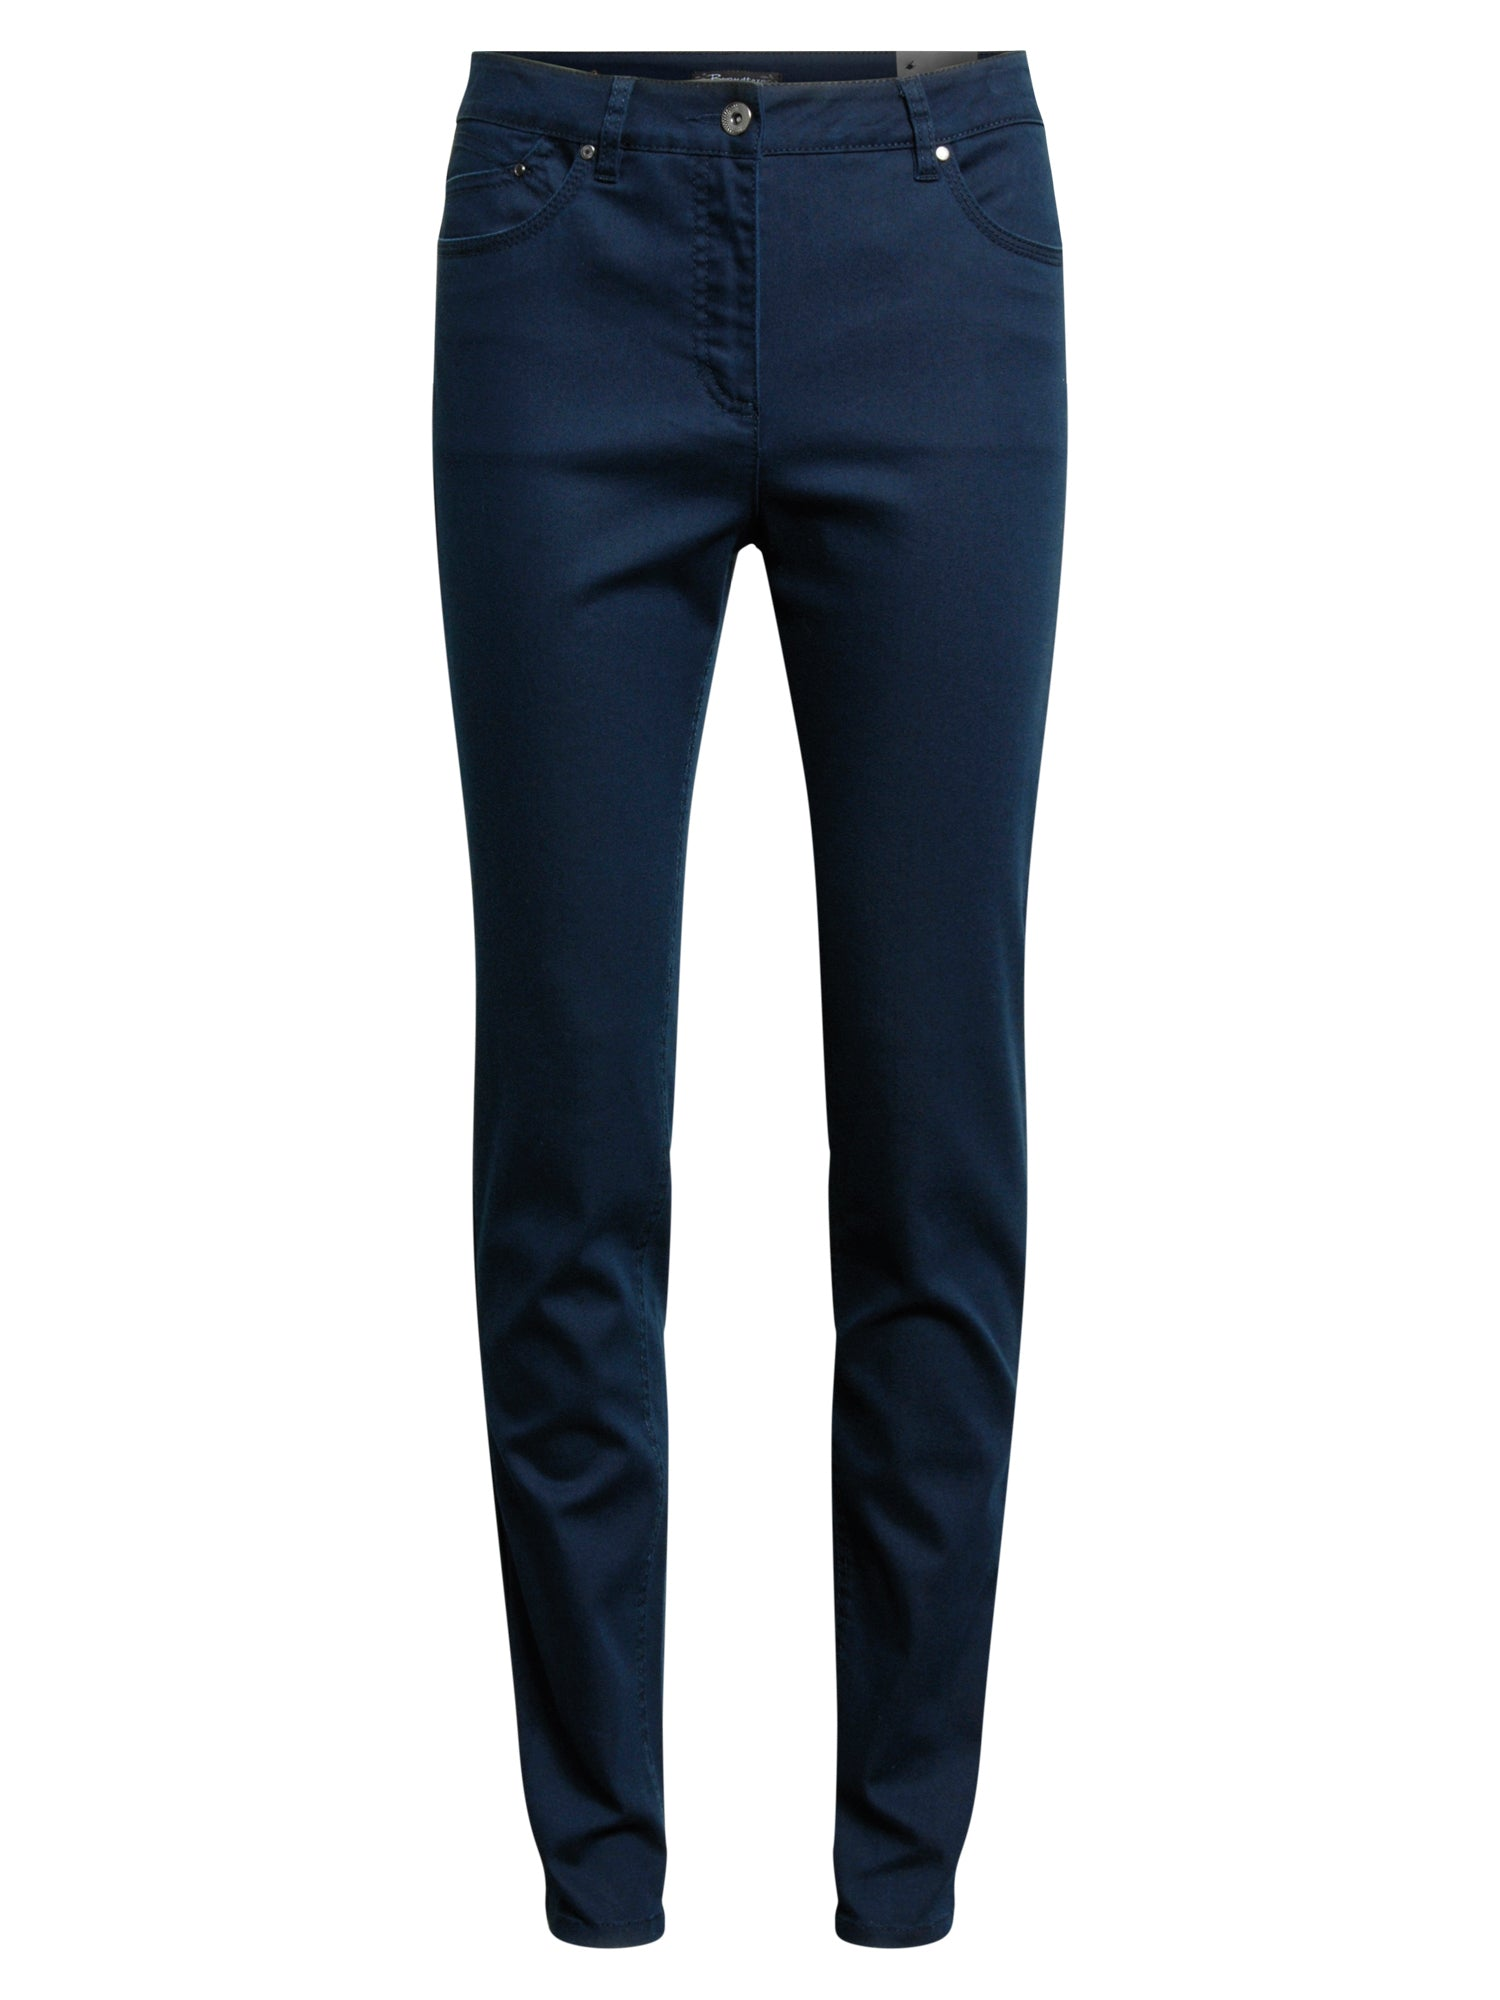 Image of   Jeans fra Victoria - Midnight Blue